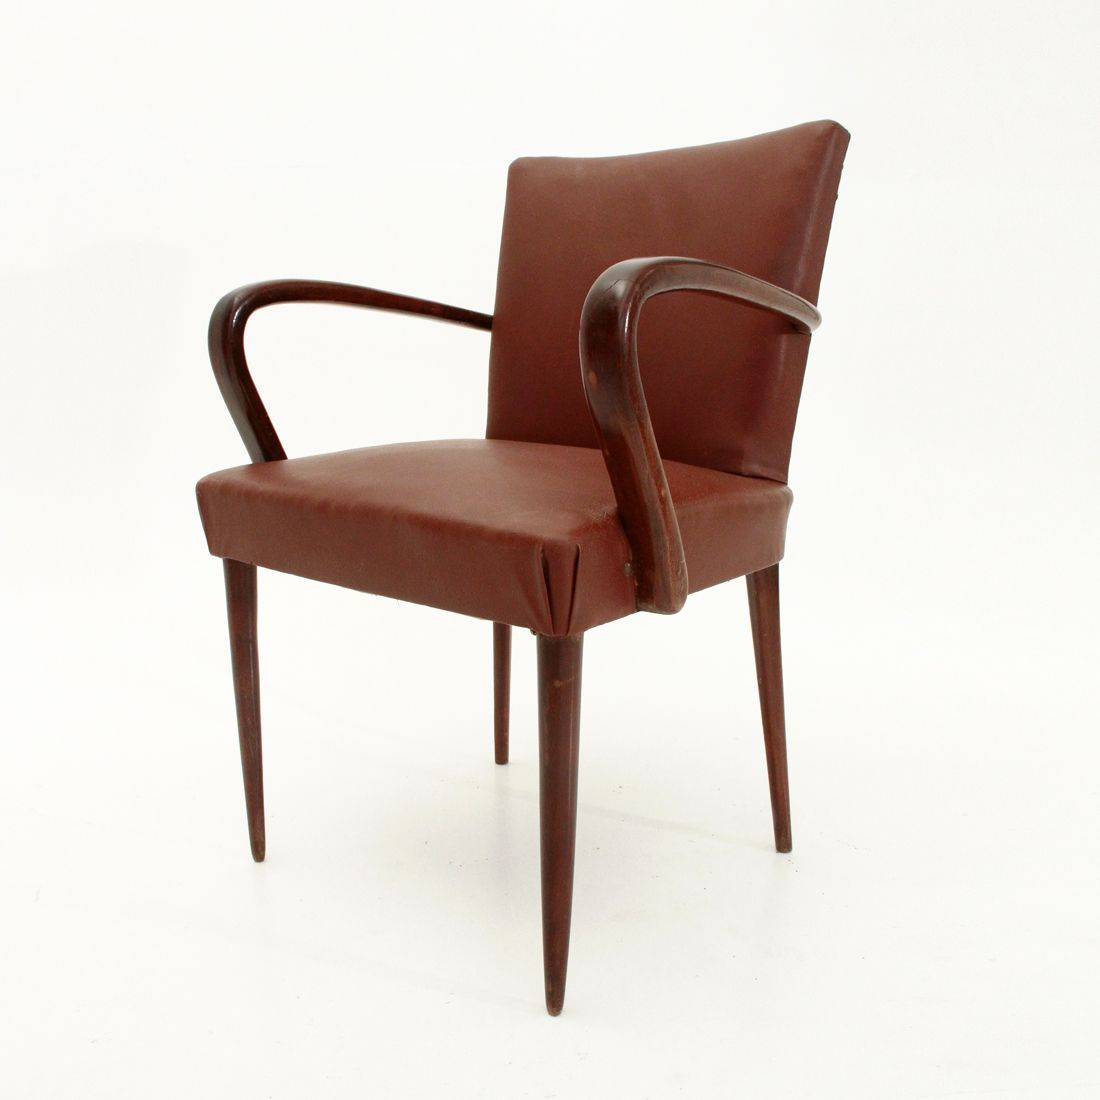 Italian Art Deco Armchair 1930s For Sale At Pamono